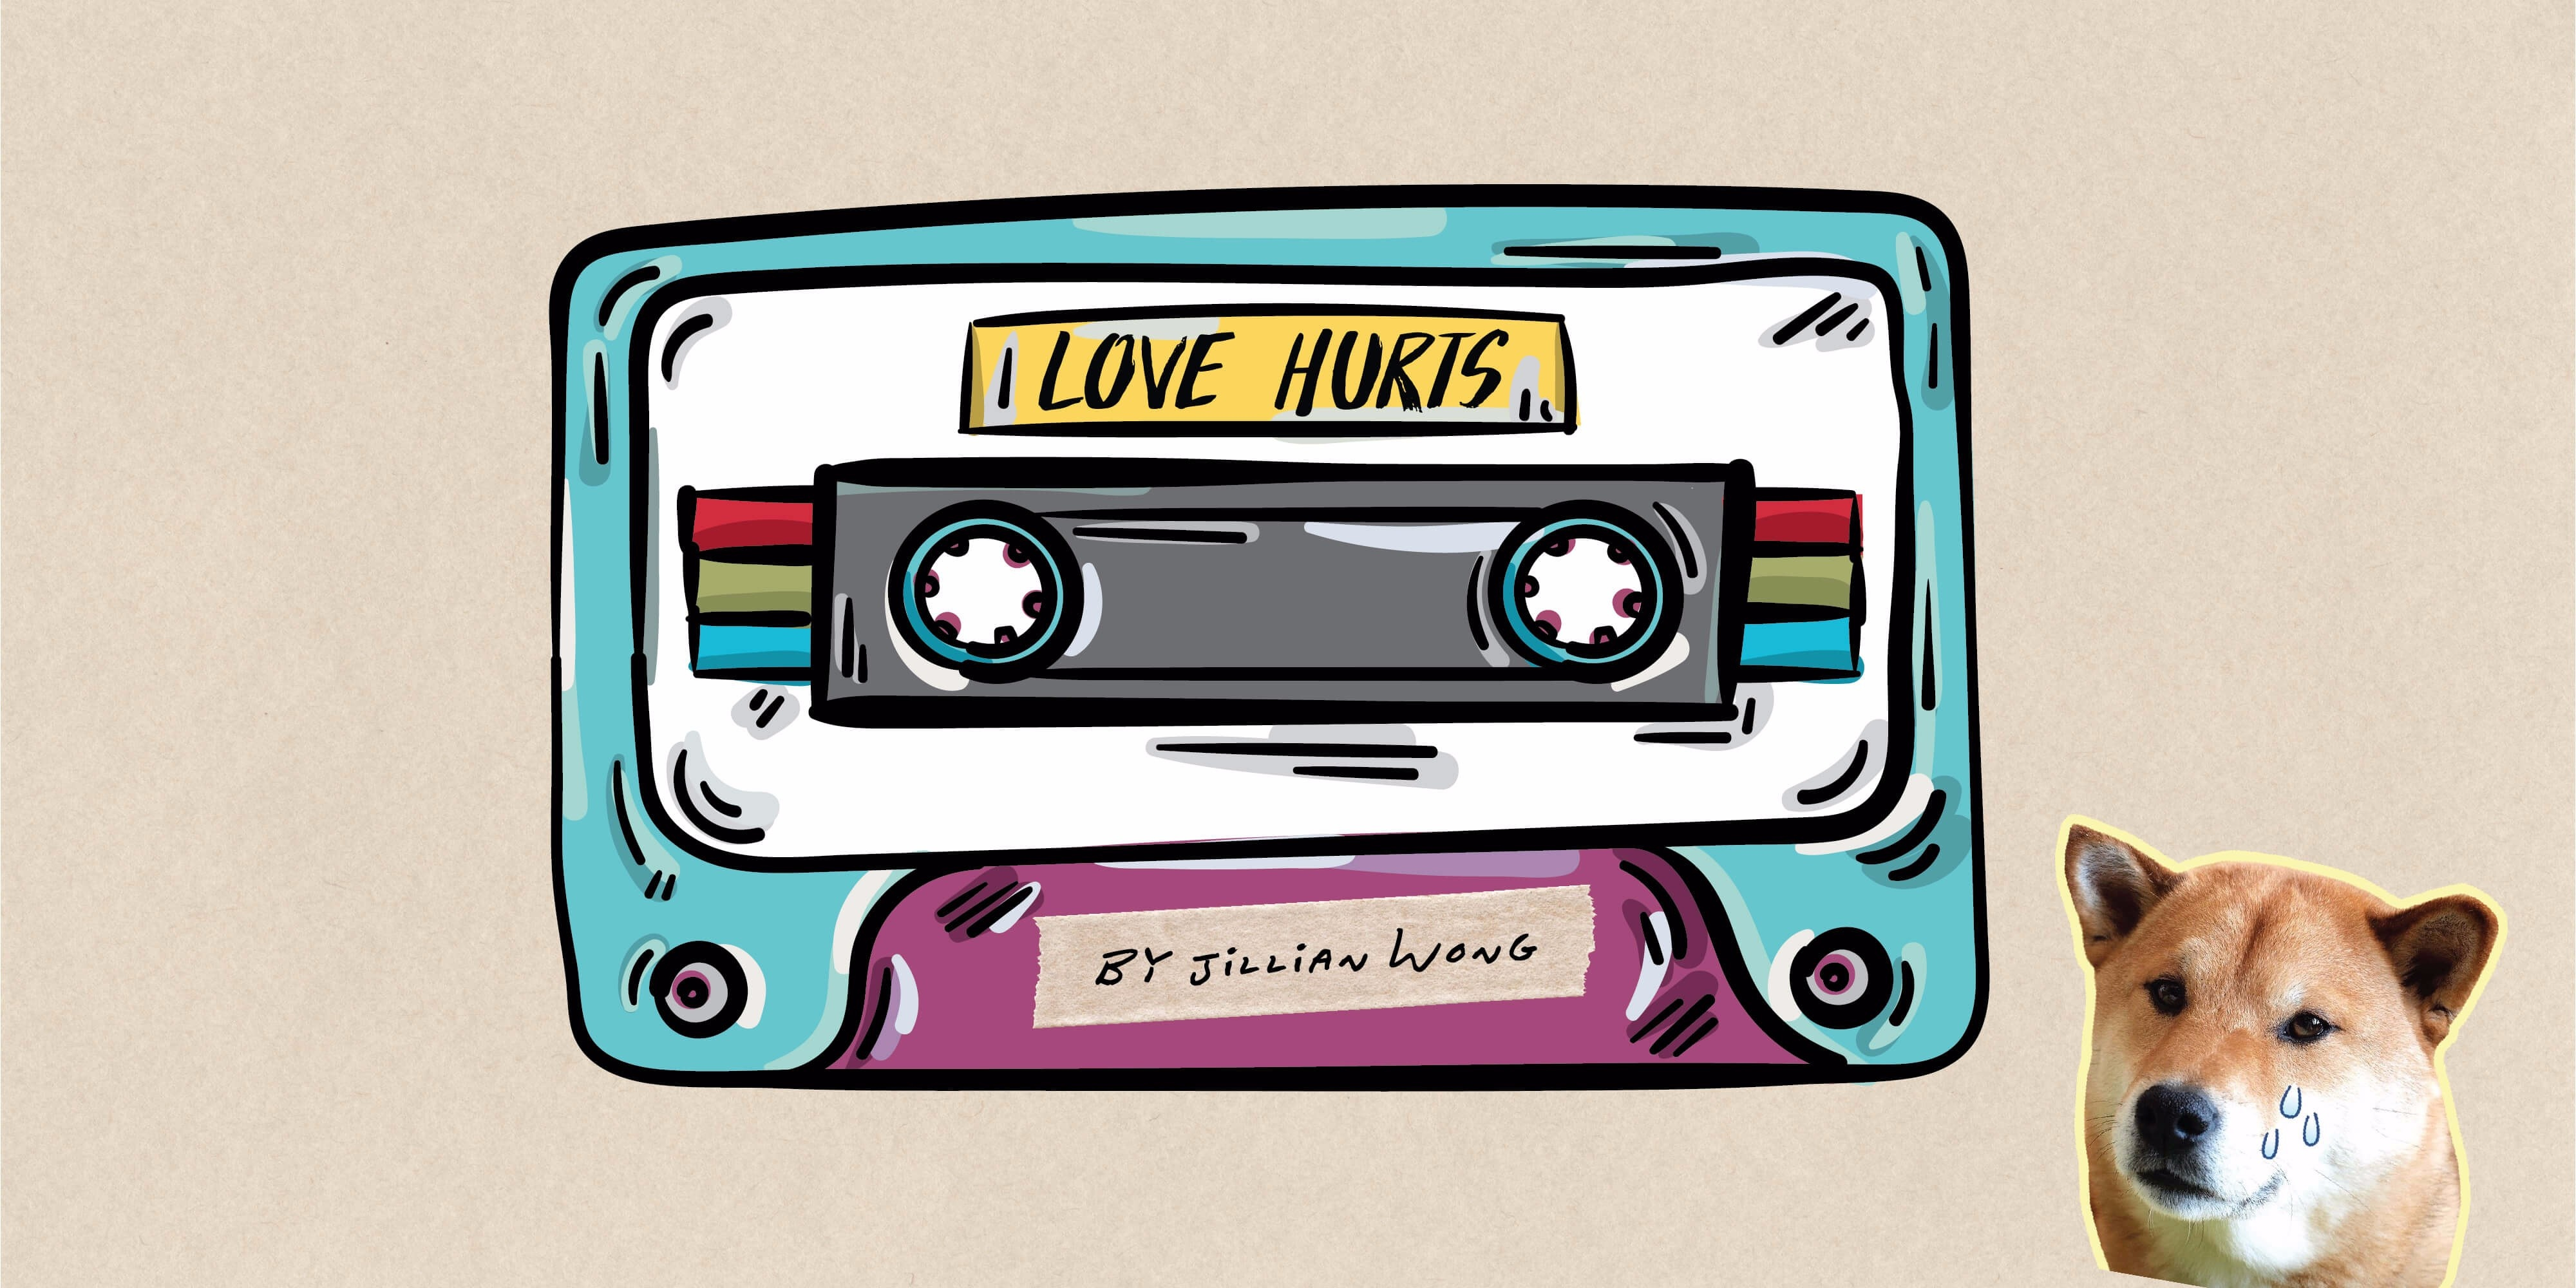 Love Hurts: A Valentine's Day mixtape for the broken-hearted